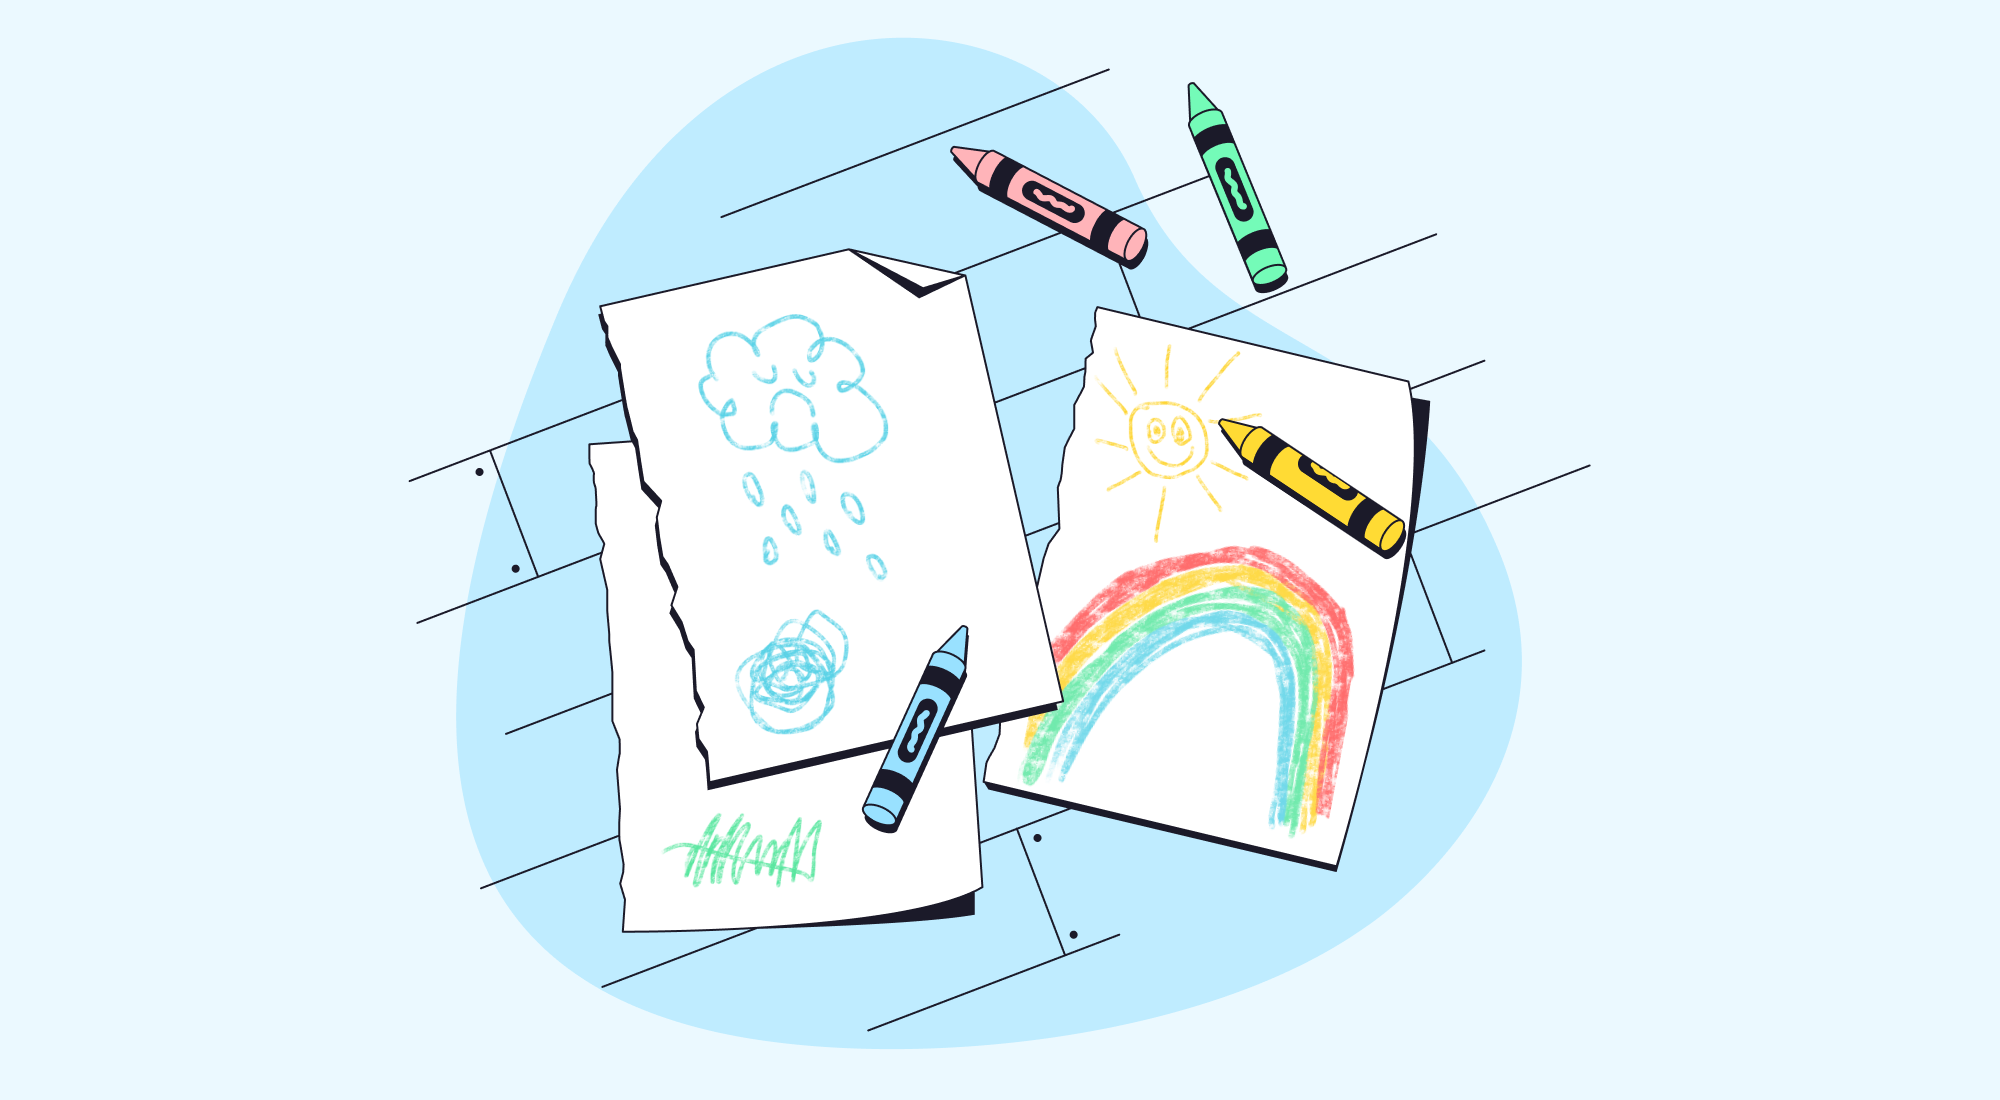 An image depicting children's drawings about their mental health